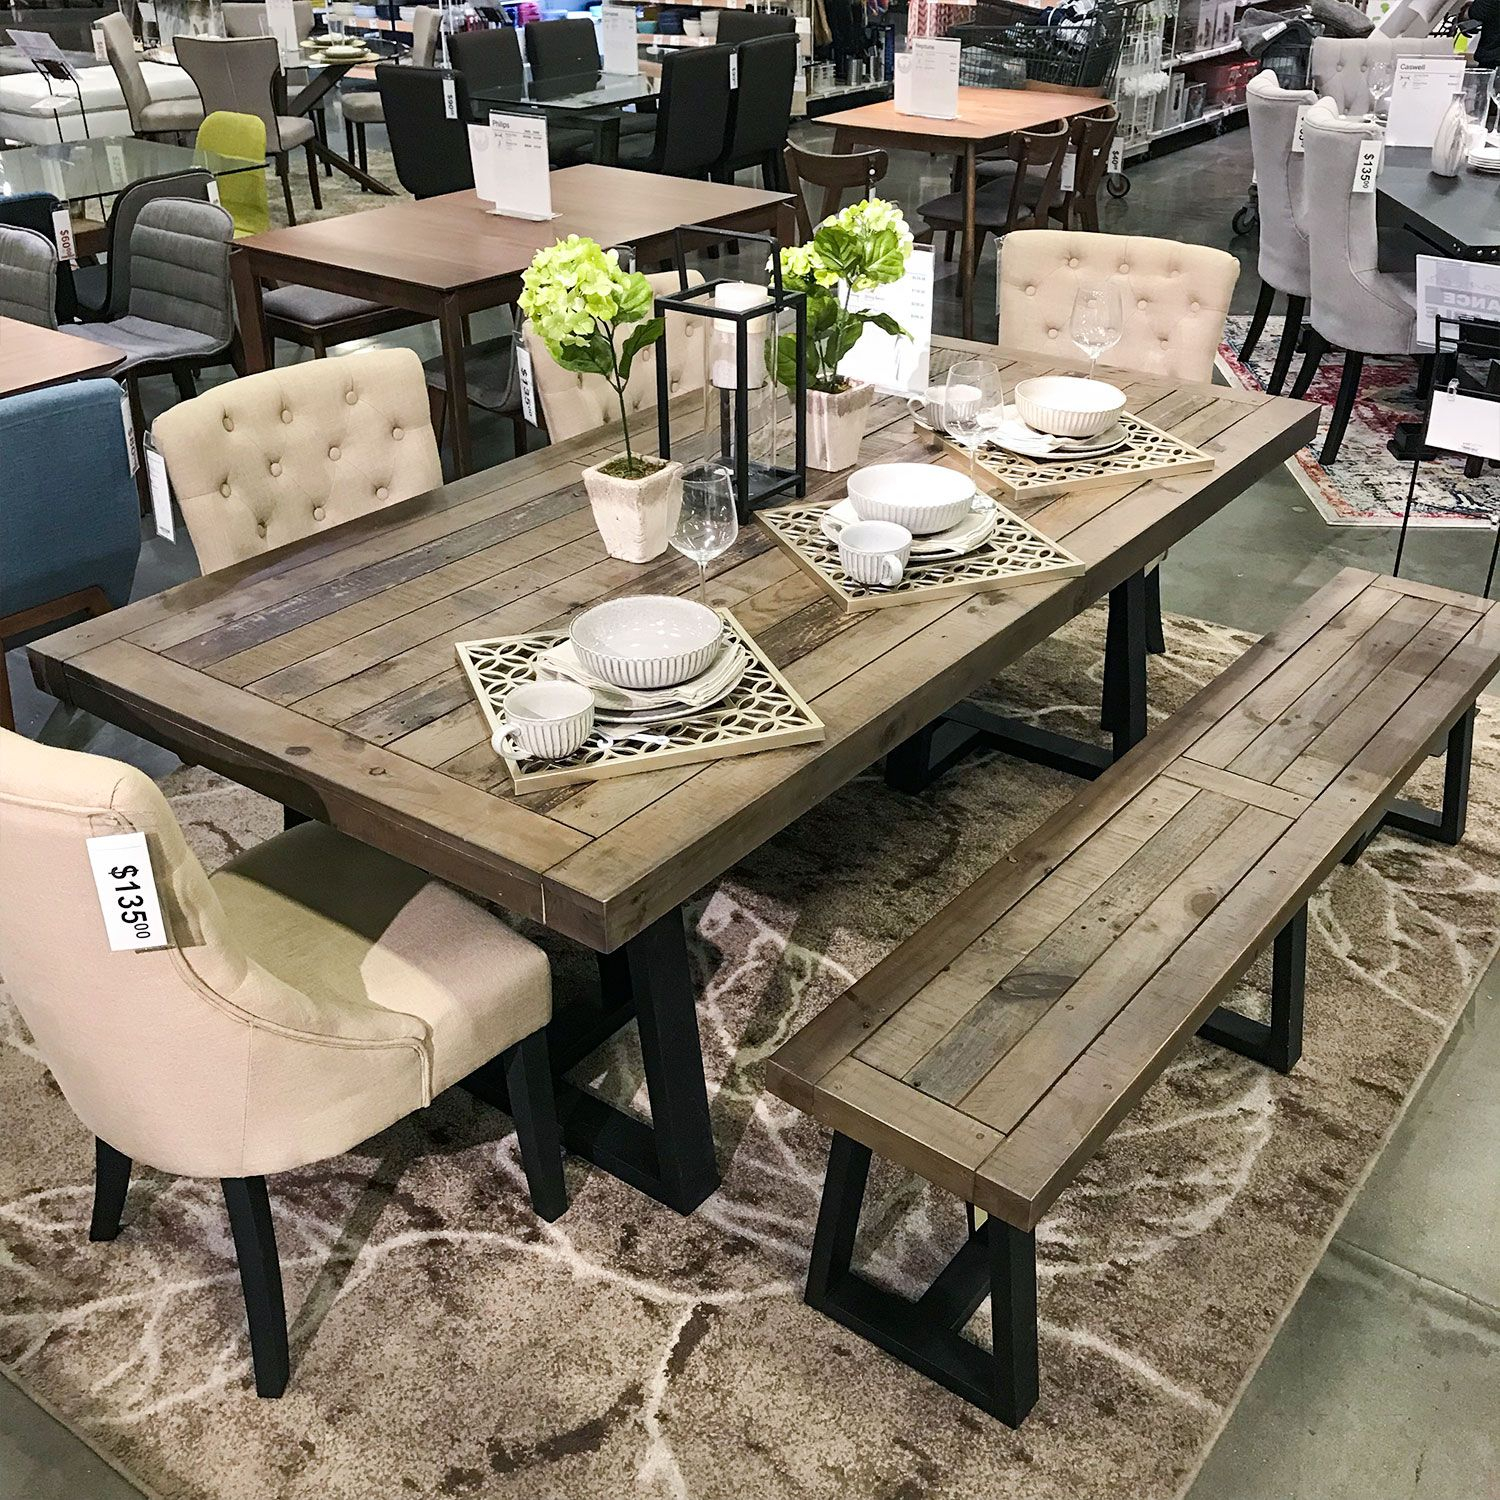 Hudson Dining Chair Dining Table With Bench Rustic Dining intended for dimensions 1500 X 1500